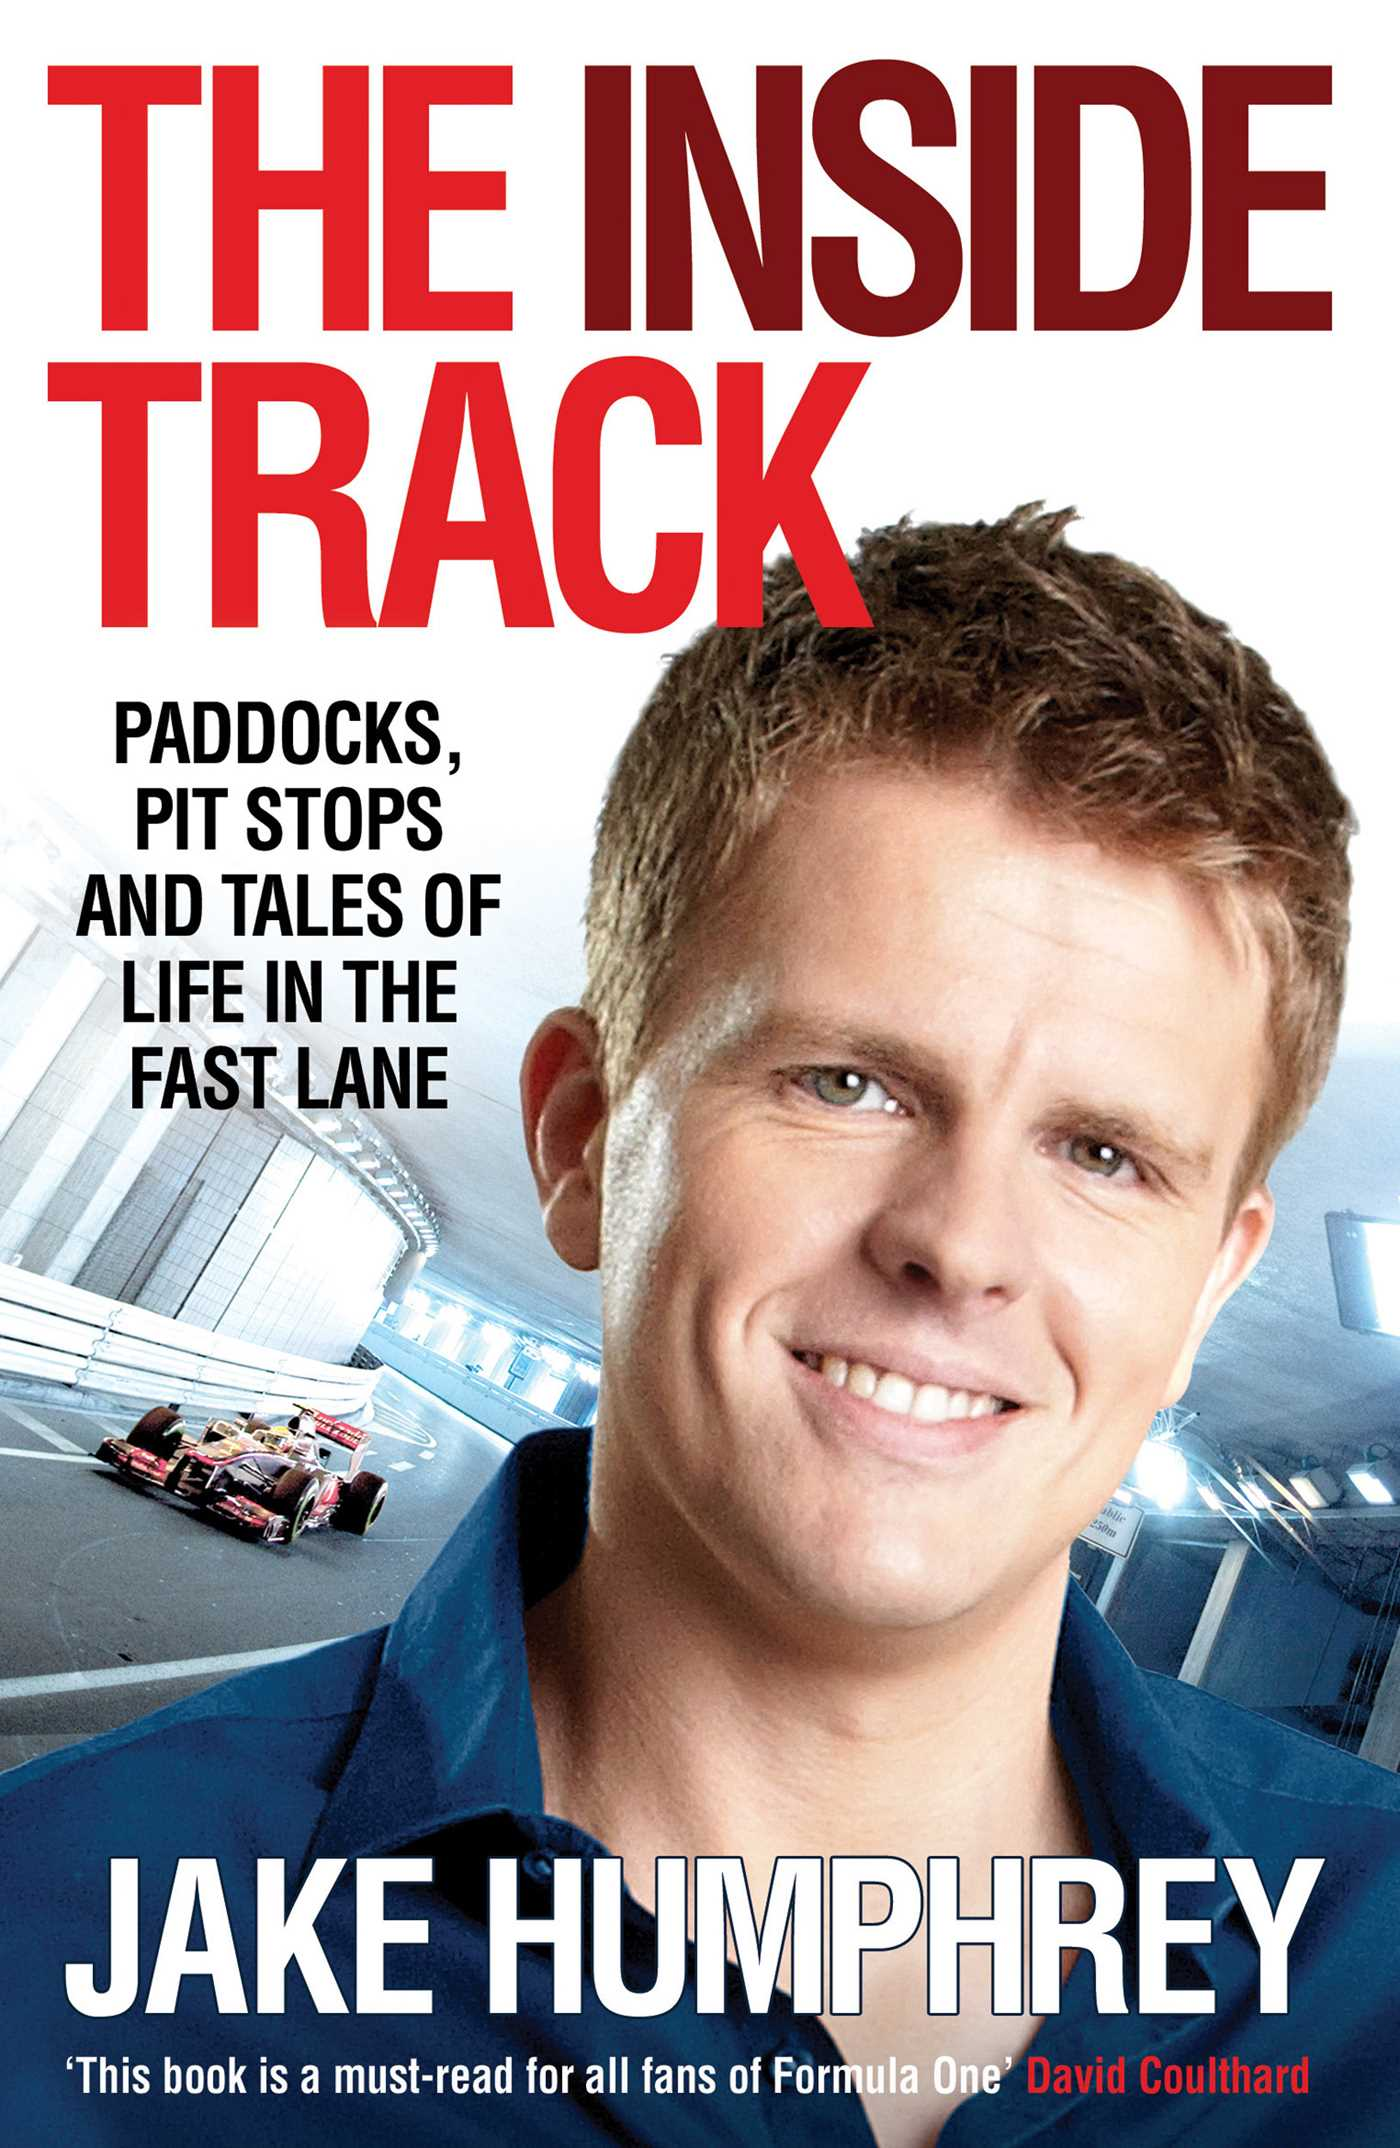 The inside track 9781849837279 hr